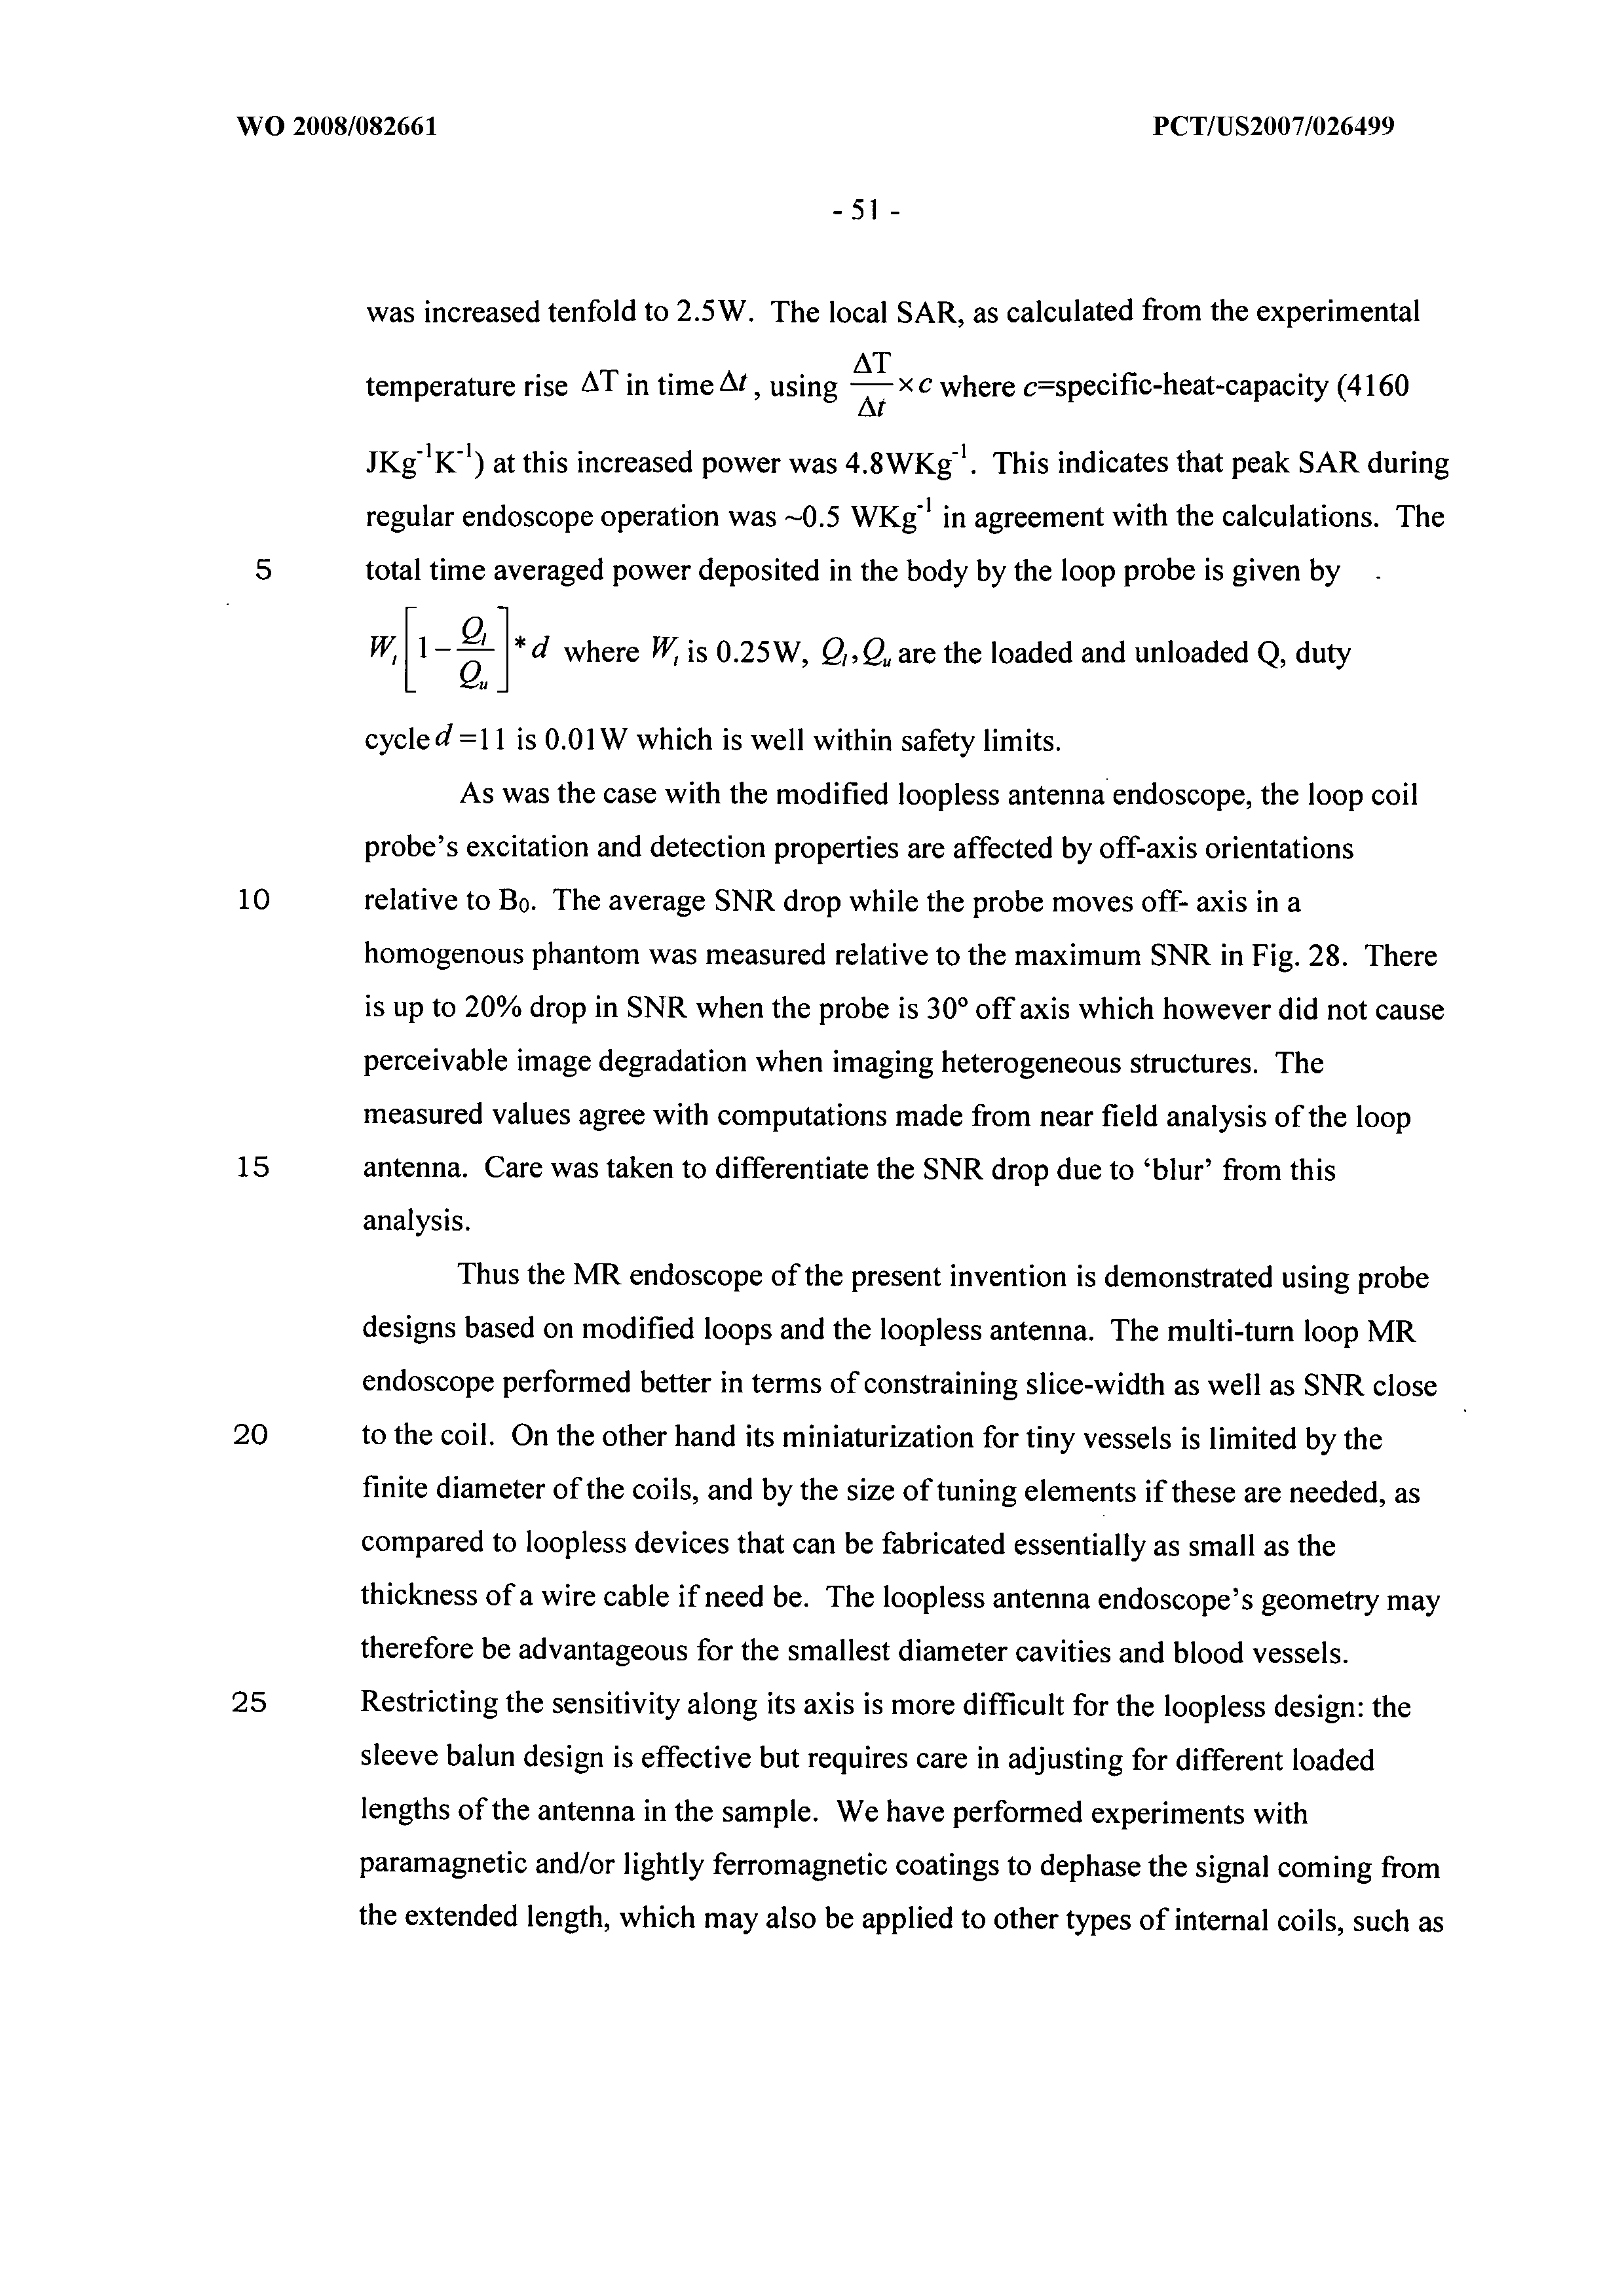 WO 2008/082661 A2 - Methods, Systems And Devices For Local